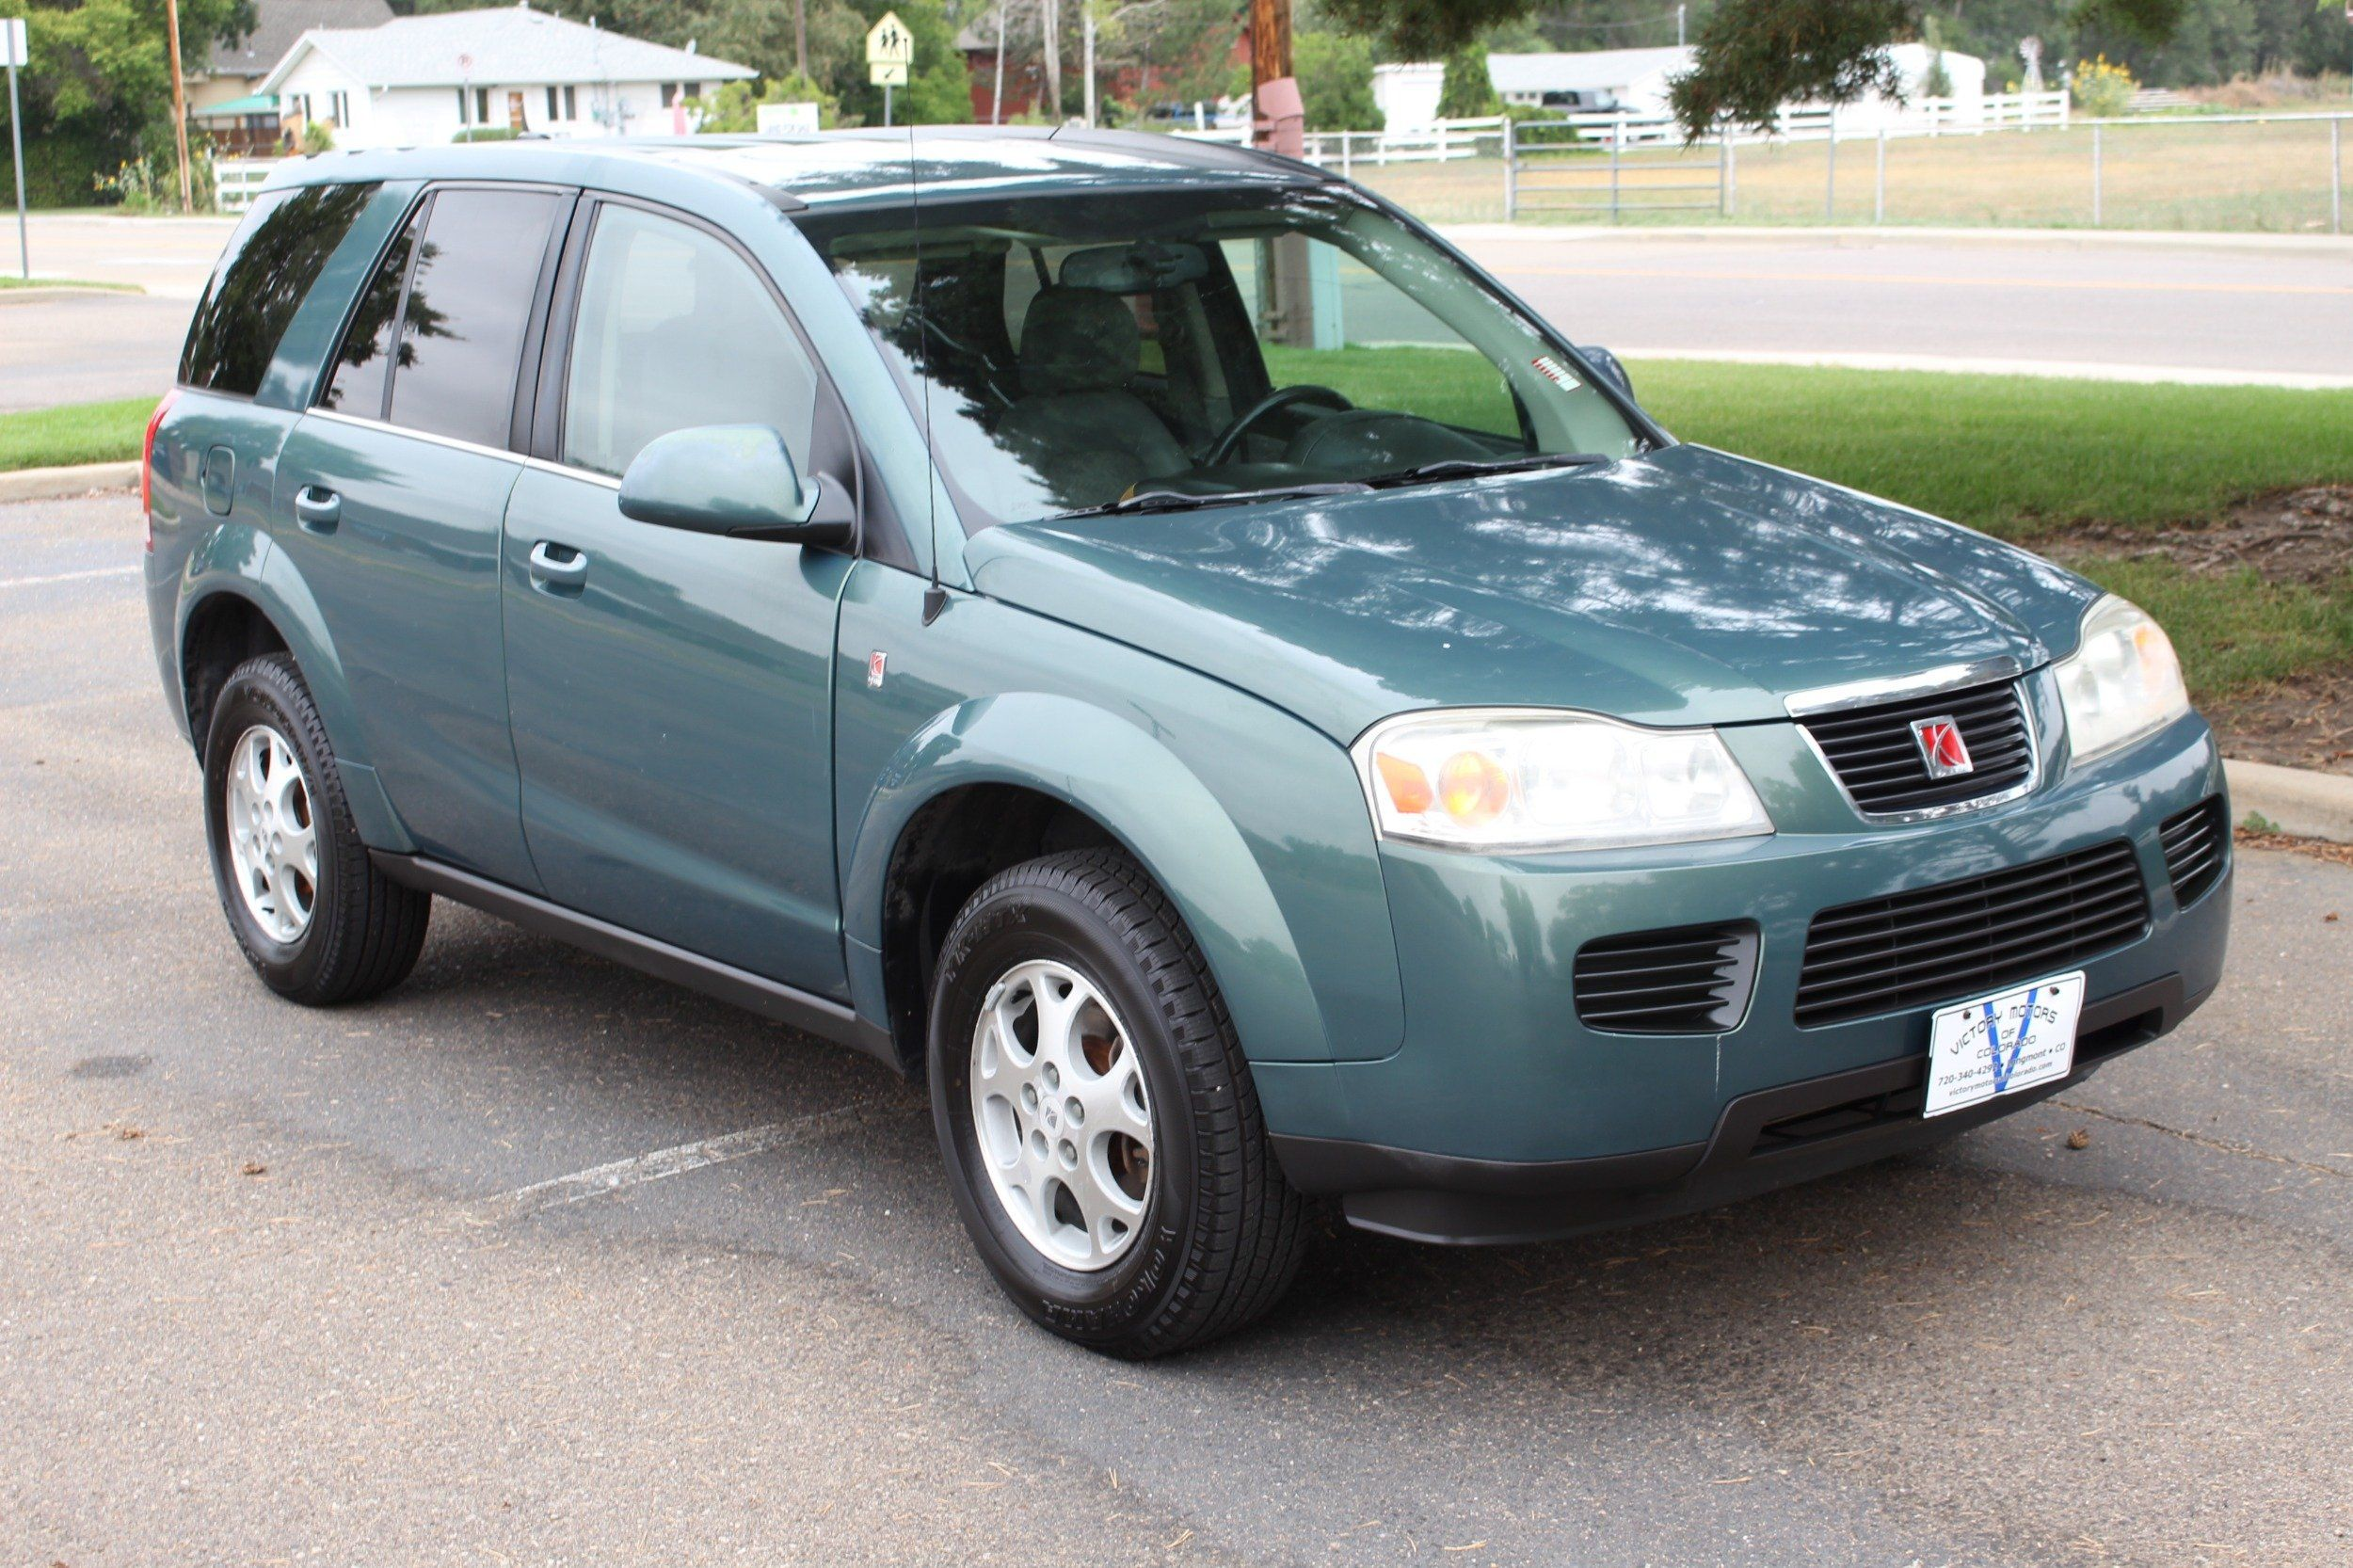 Saturn Vue Tires